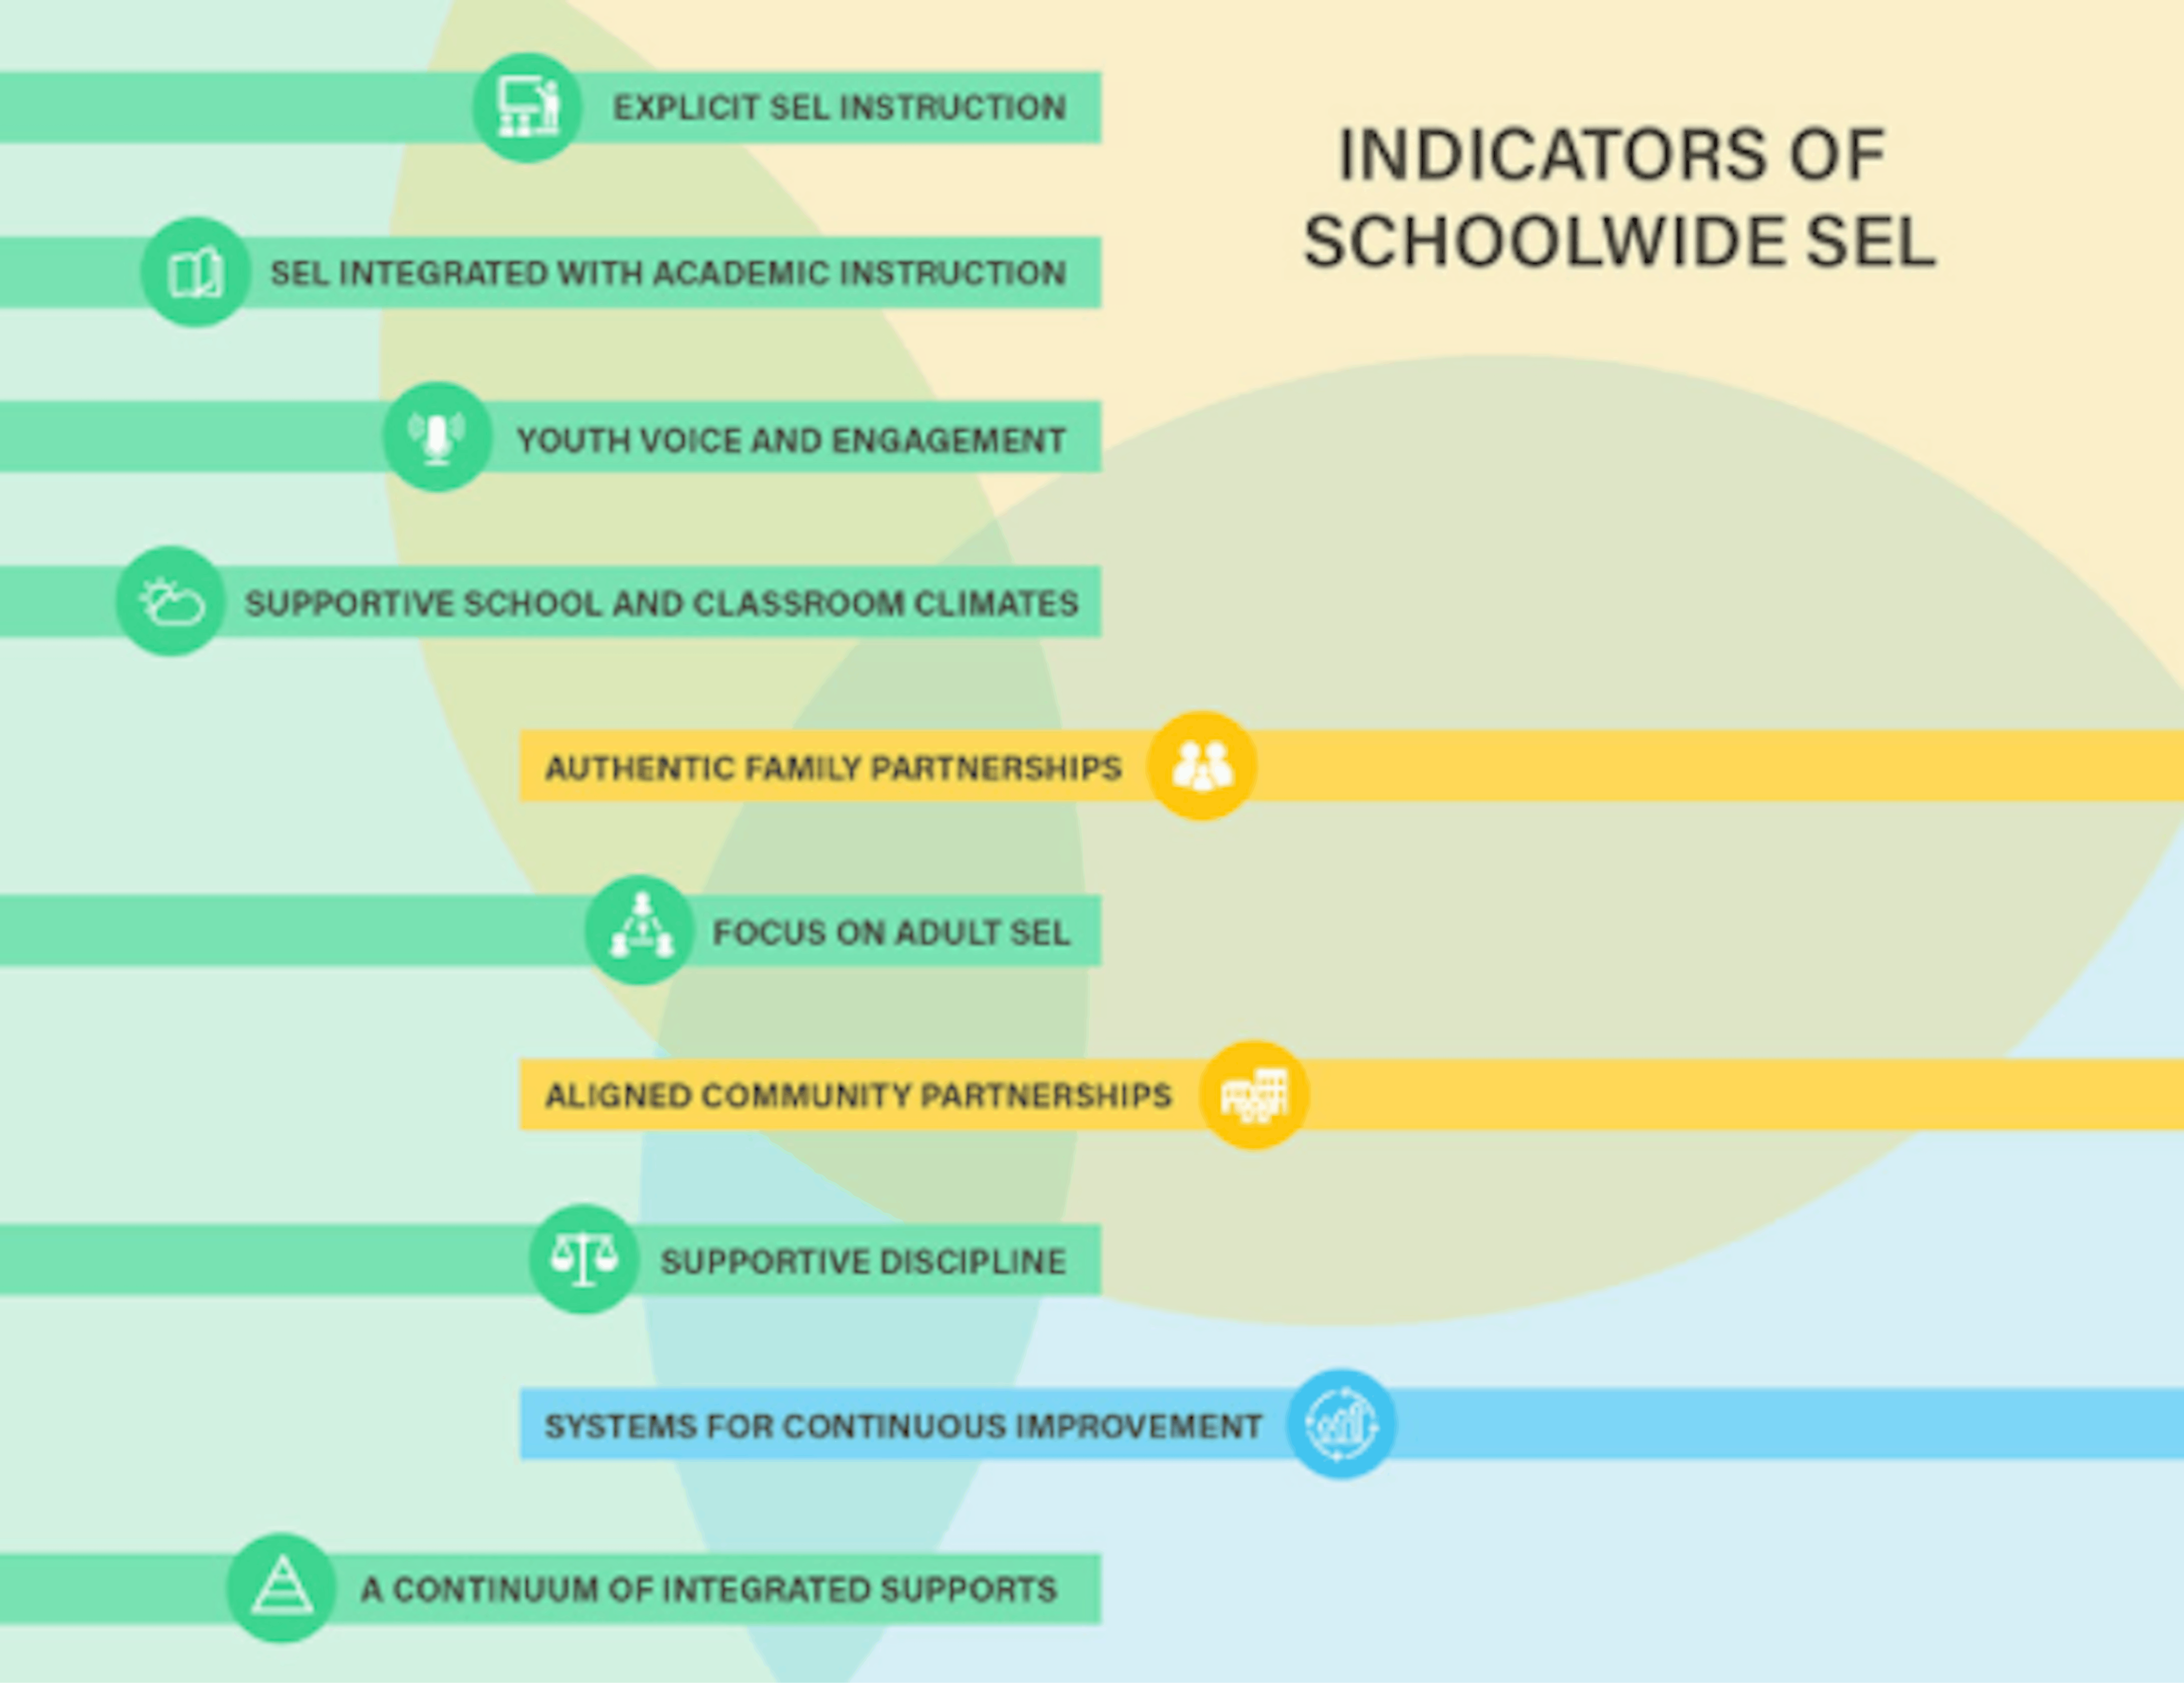 An infographic displaying the different indicators of schoolwide SEL.